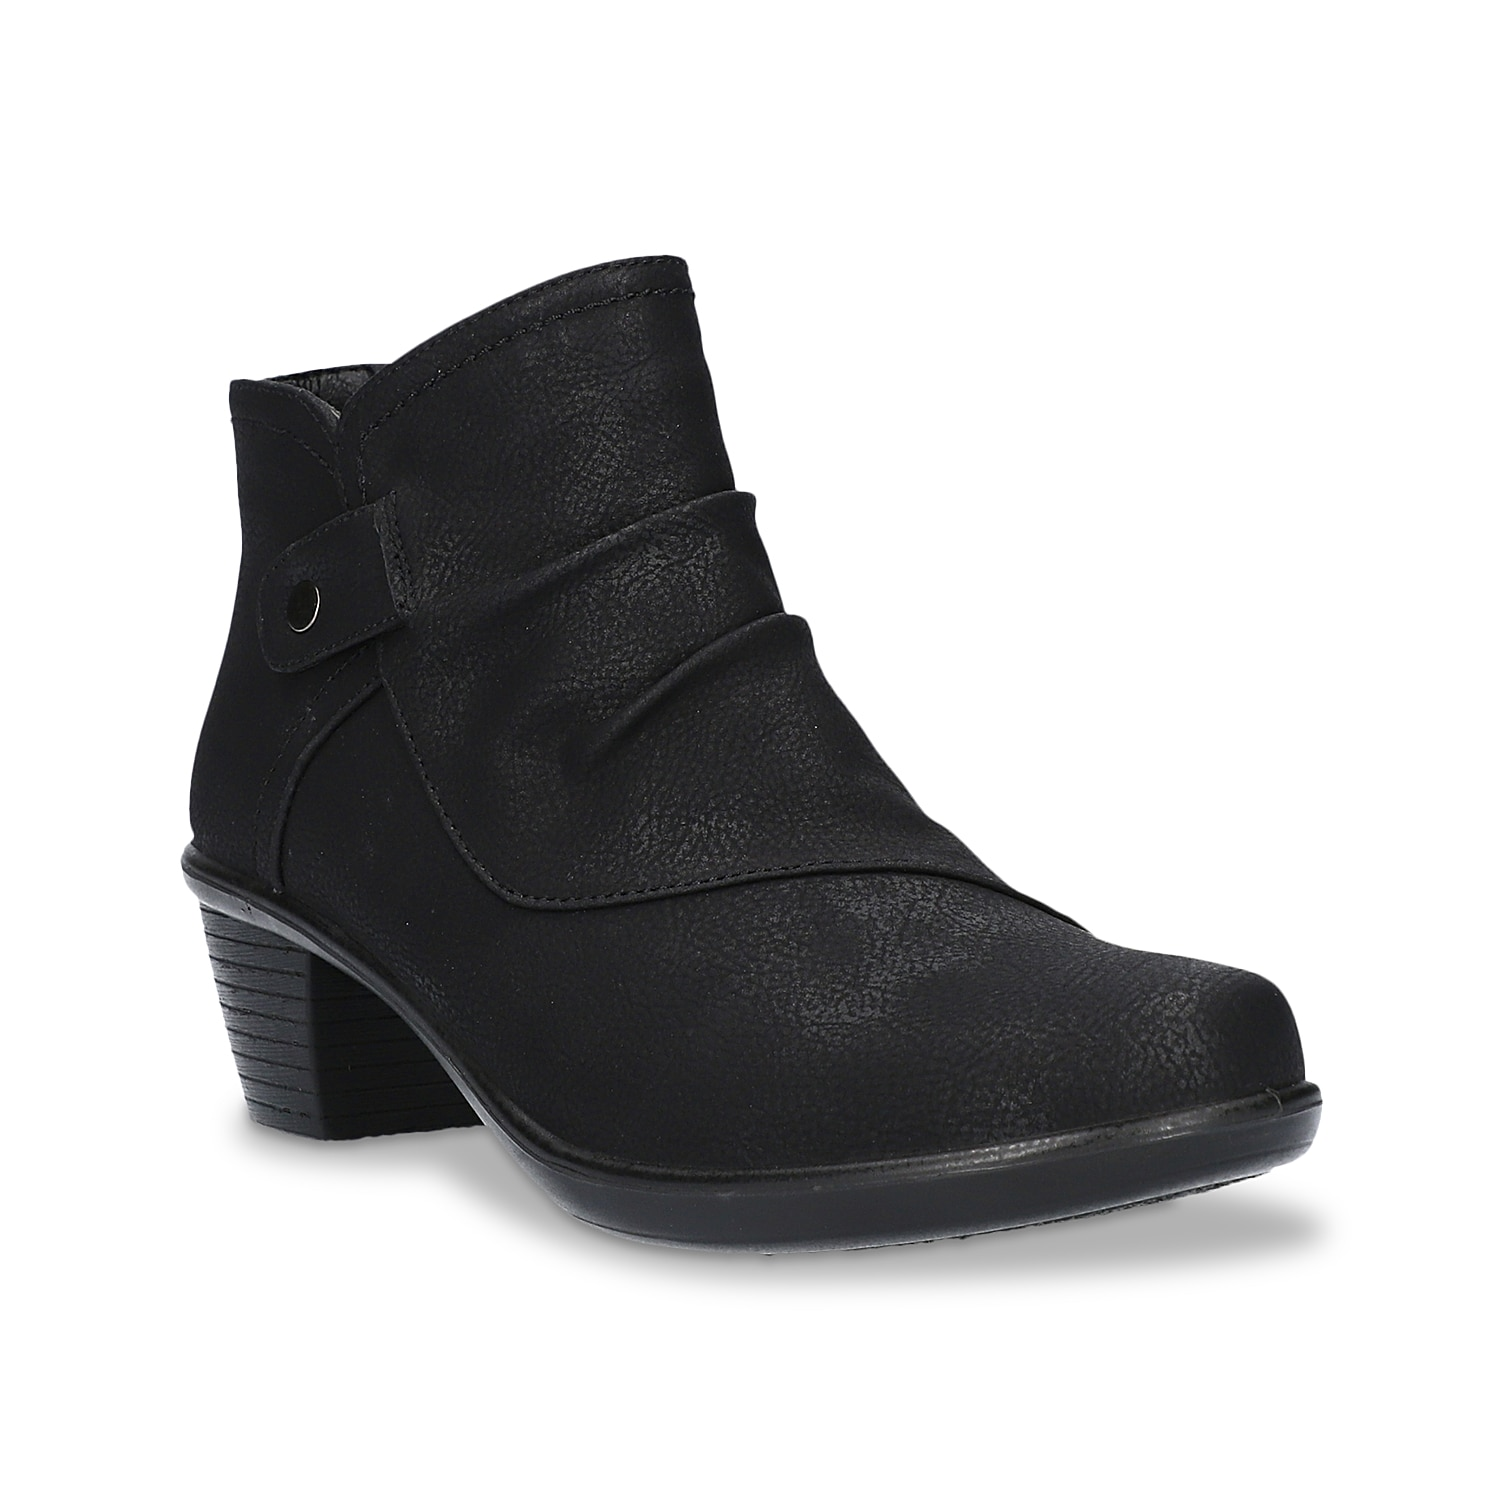 The Easy Street Cooper bootie has the right balance of fashion and functionality. Boasting of ruched upper with coordinating nailhead trim, this ankle bootie has convenient inside zip closure, comfortable Easy Motion insole and supportive stacked block heel.Click here for Boot Measuring Guide.